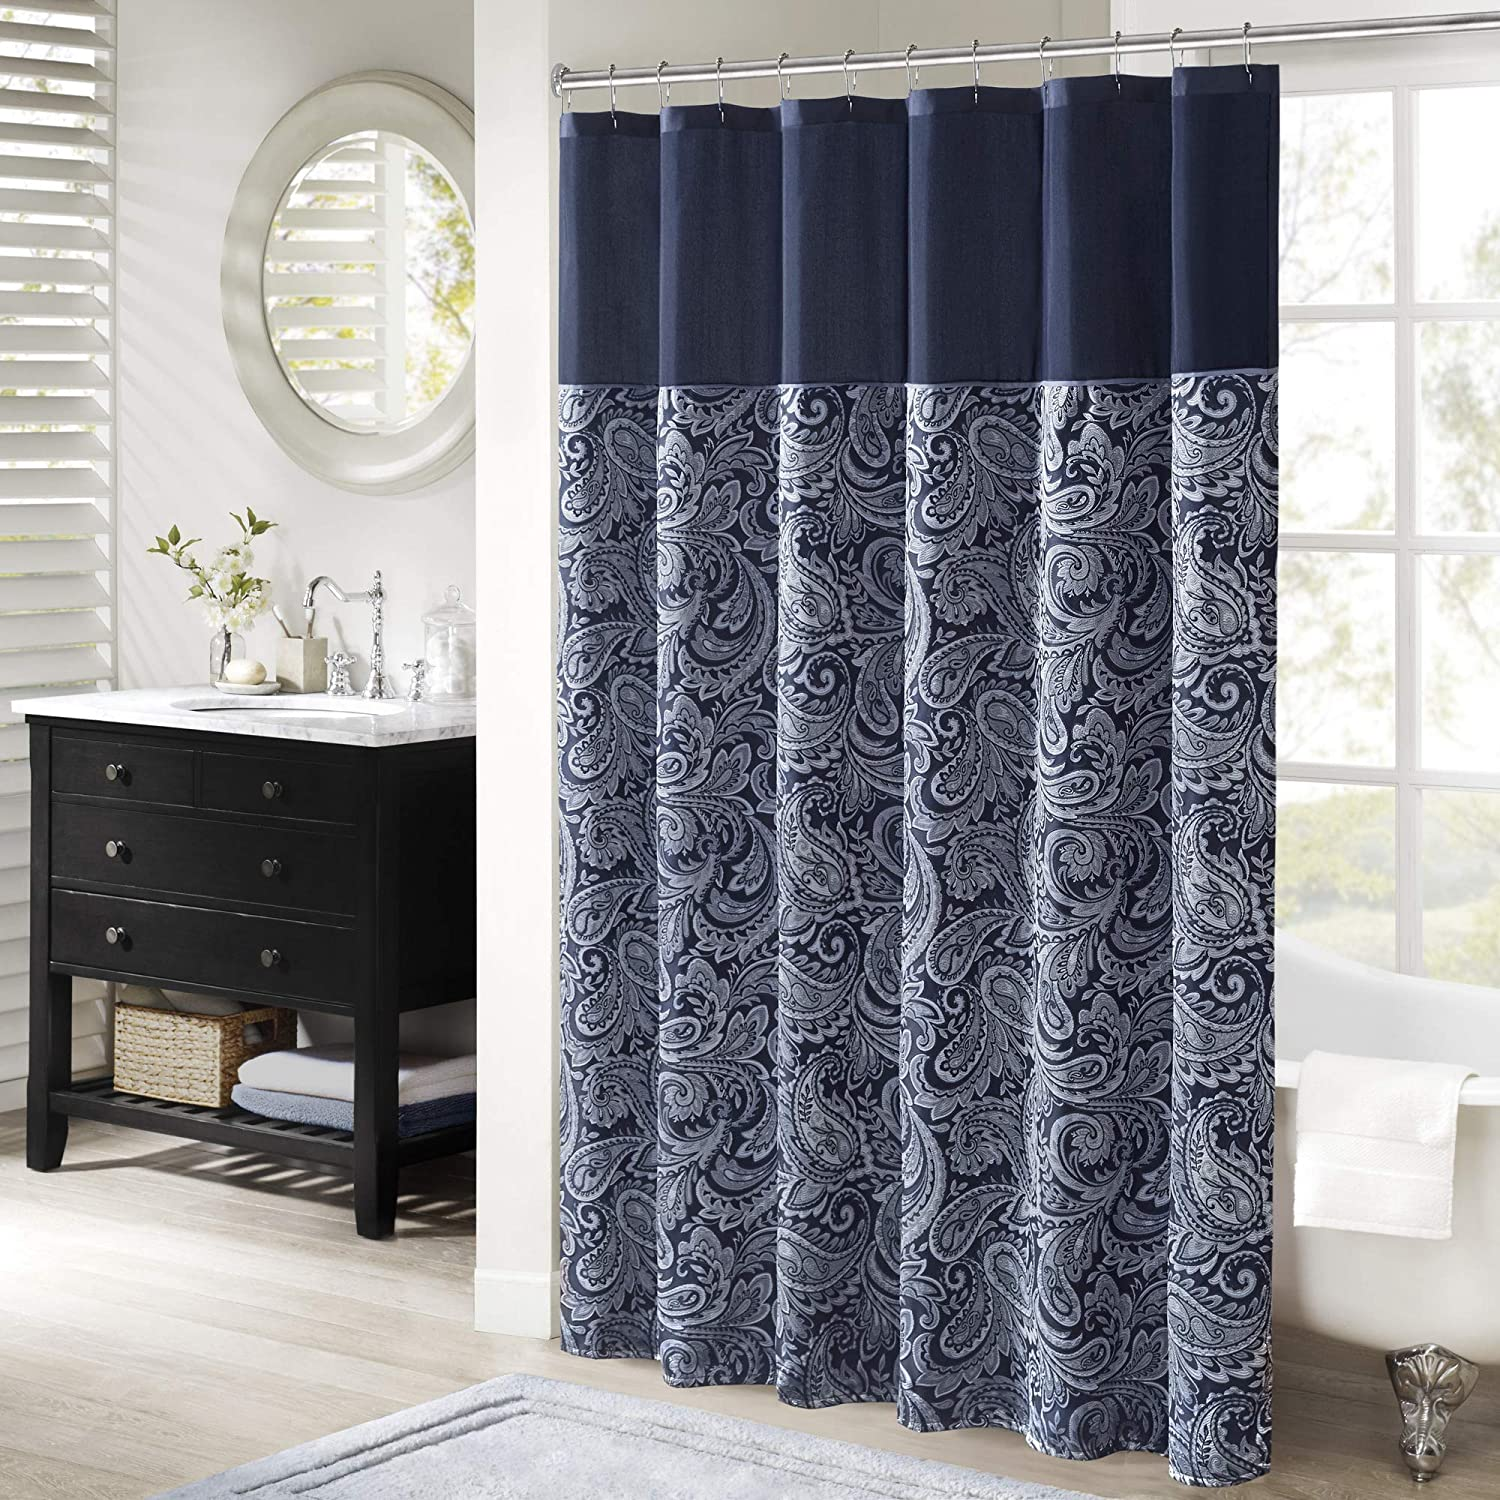 "Madison Park Aubrey Shower Curtain Paisley Jacquard Pieced Microfiber Faux Silk Modern Home Bathroom Decorations Bathtub Privacy Screen, 72"" x 72"", Navy"